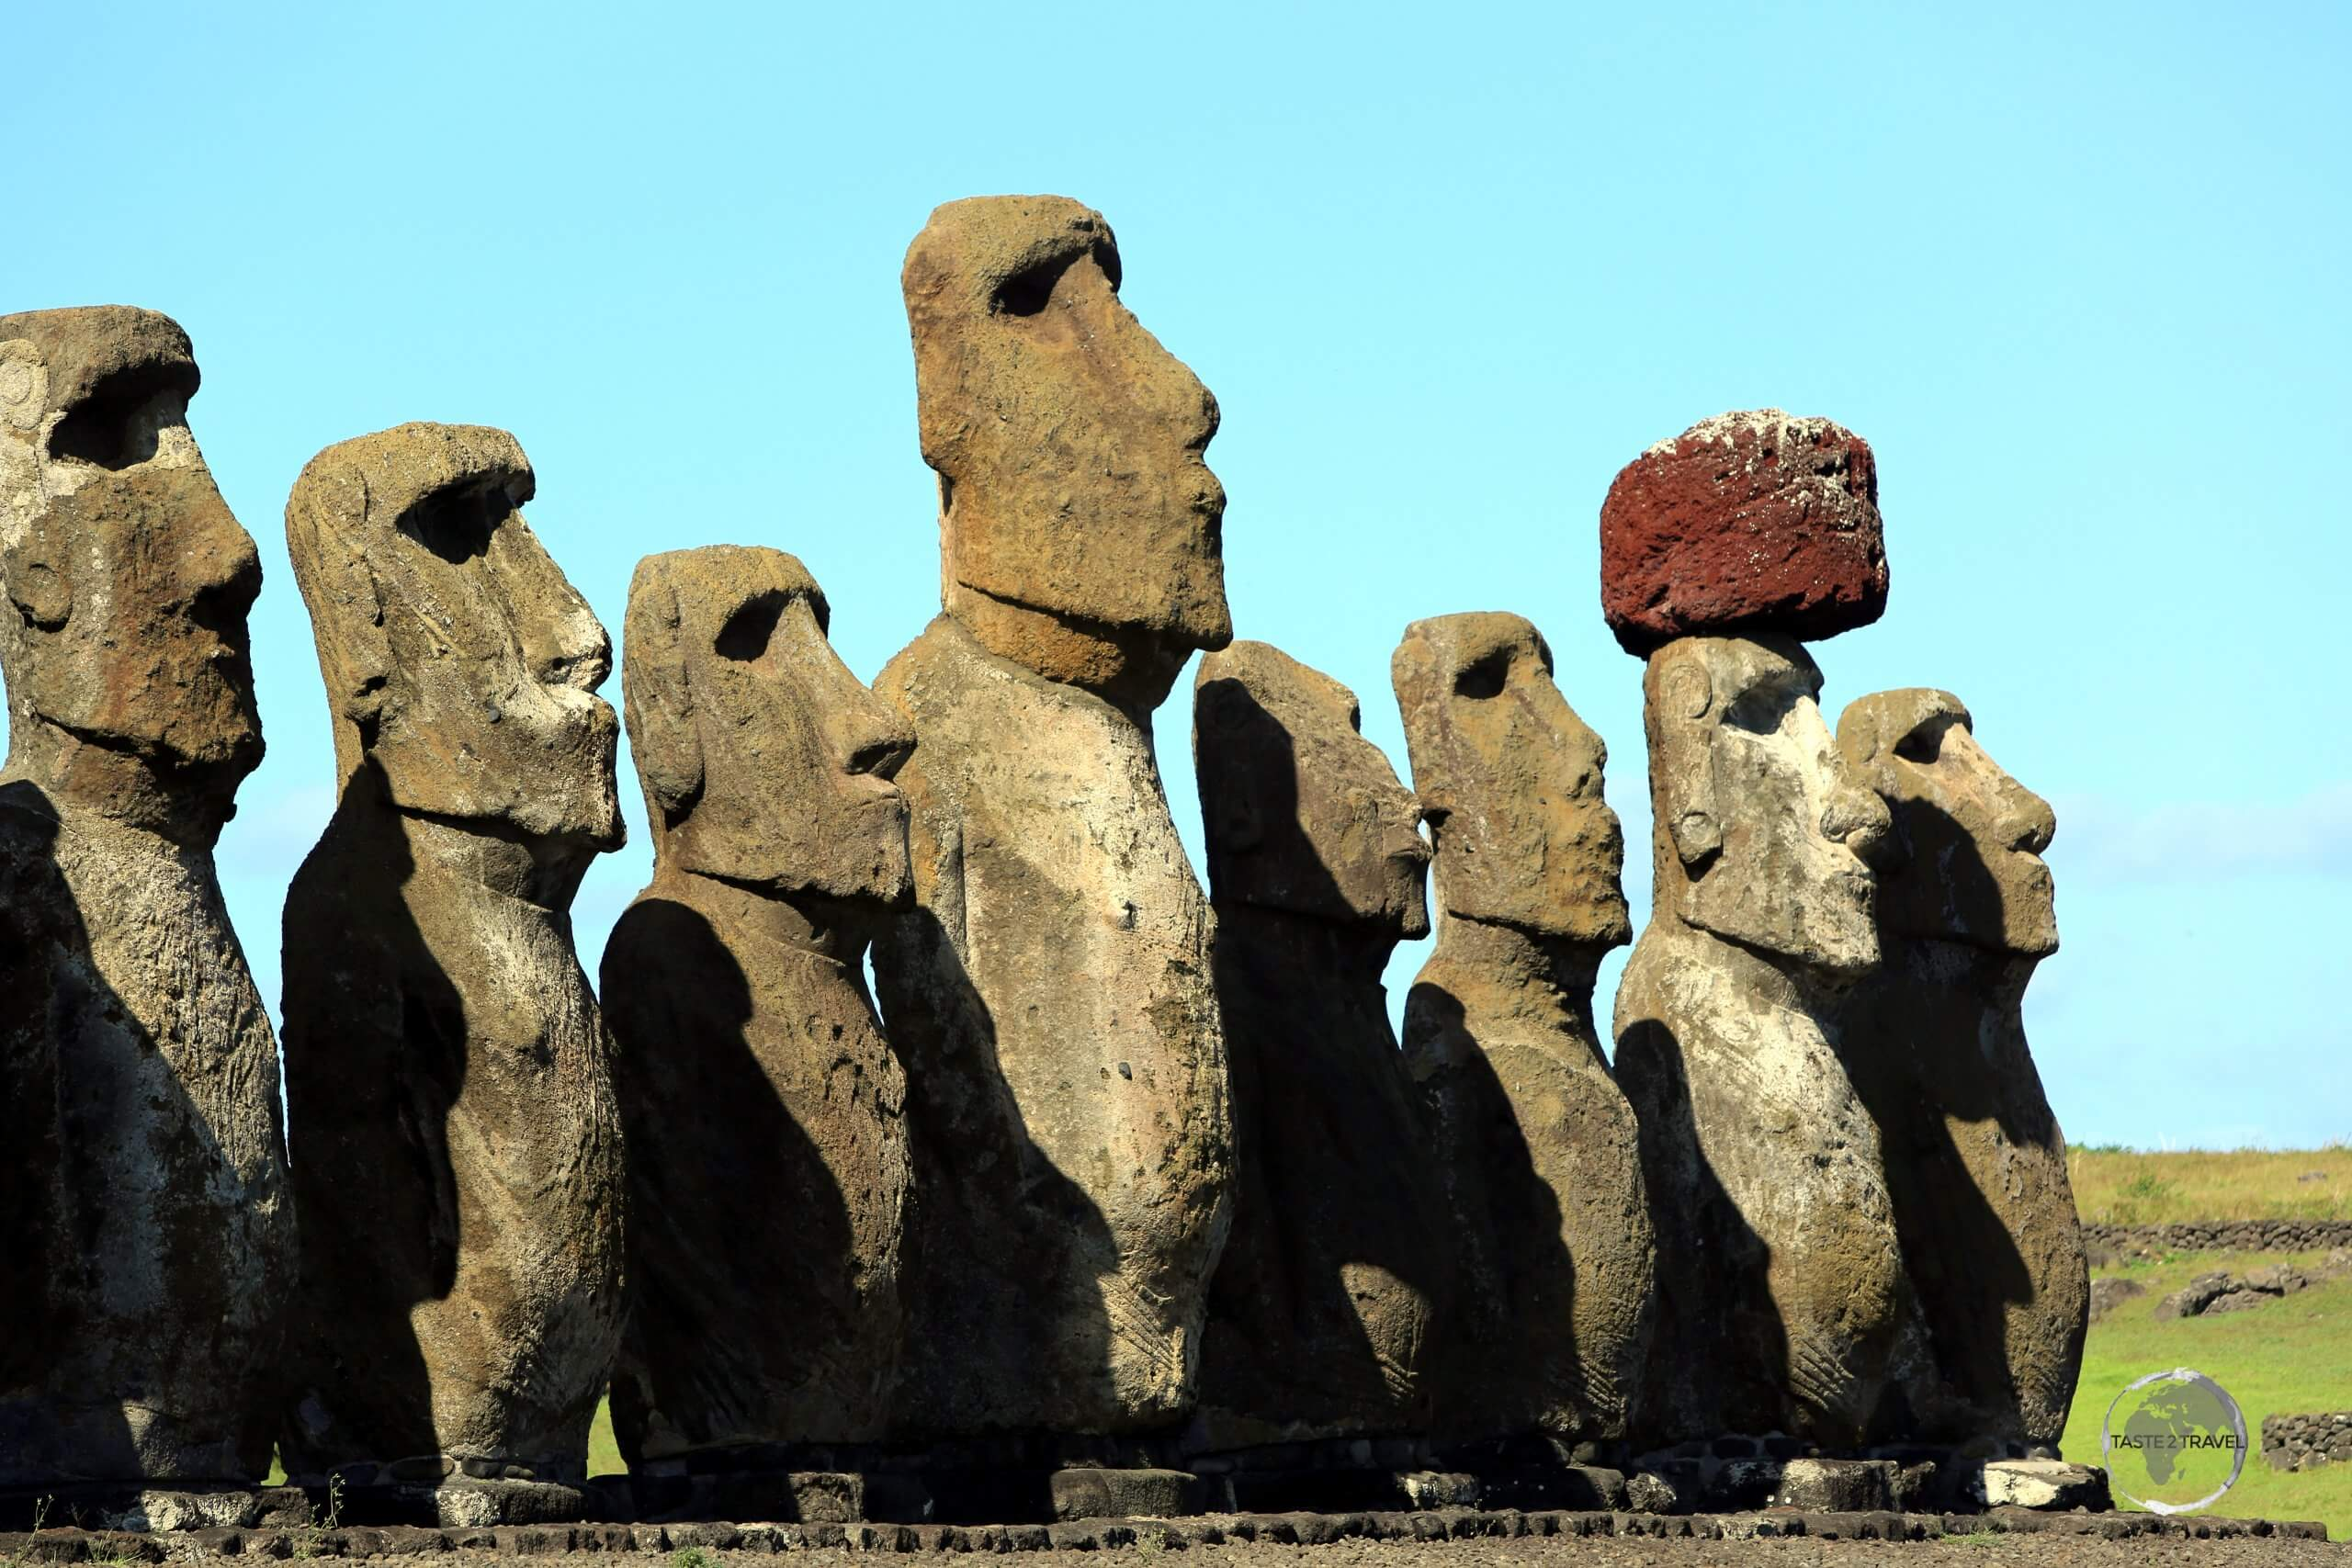 The moai of Ahu Tongariki were toppled during the island's civil war, and, in 1960, a tsunami swept them inland. They have since been returned to their original positions.